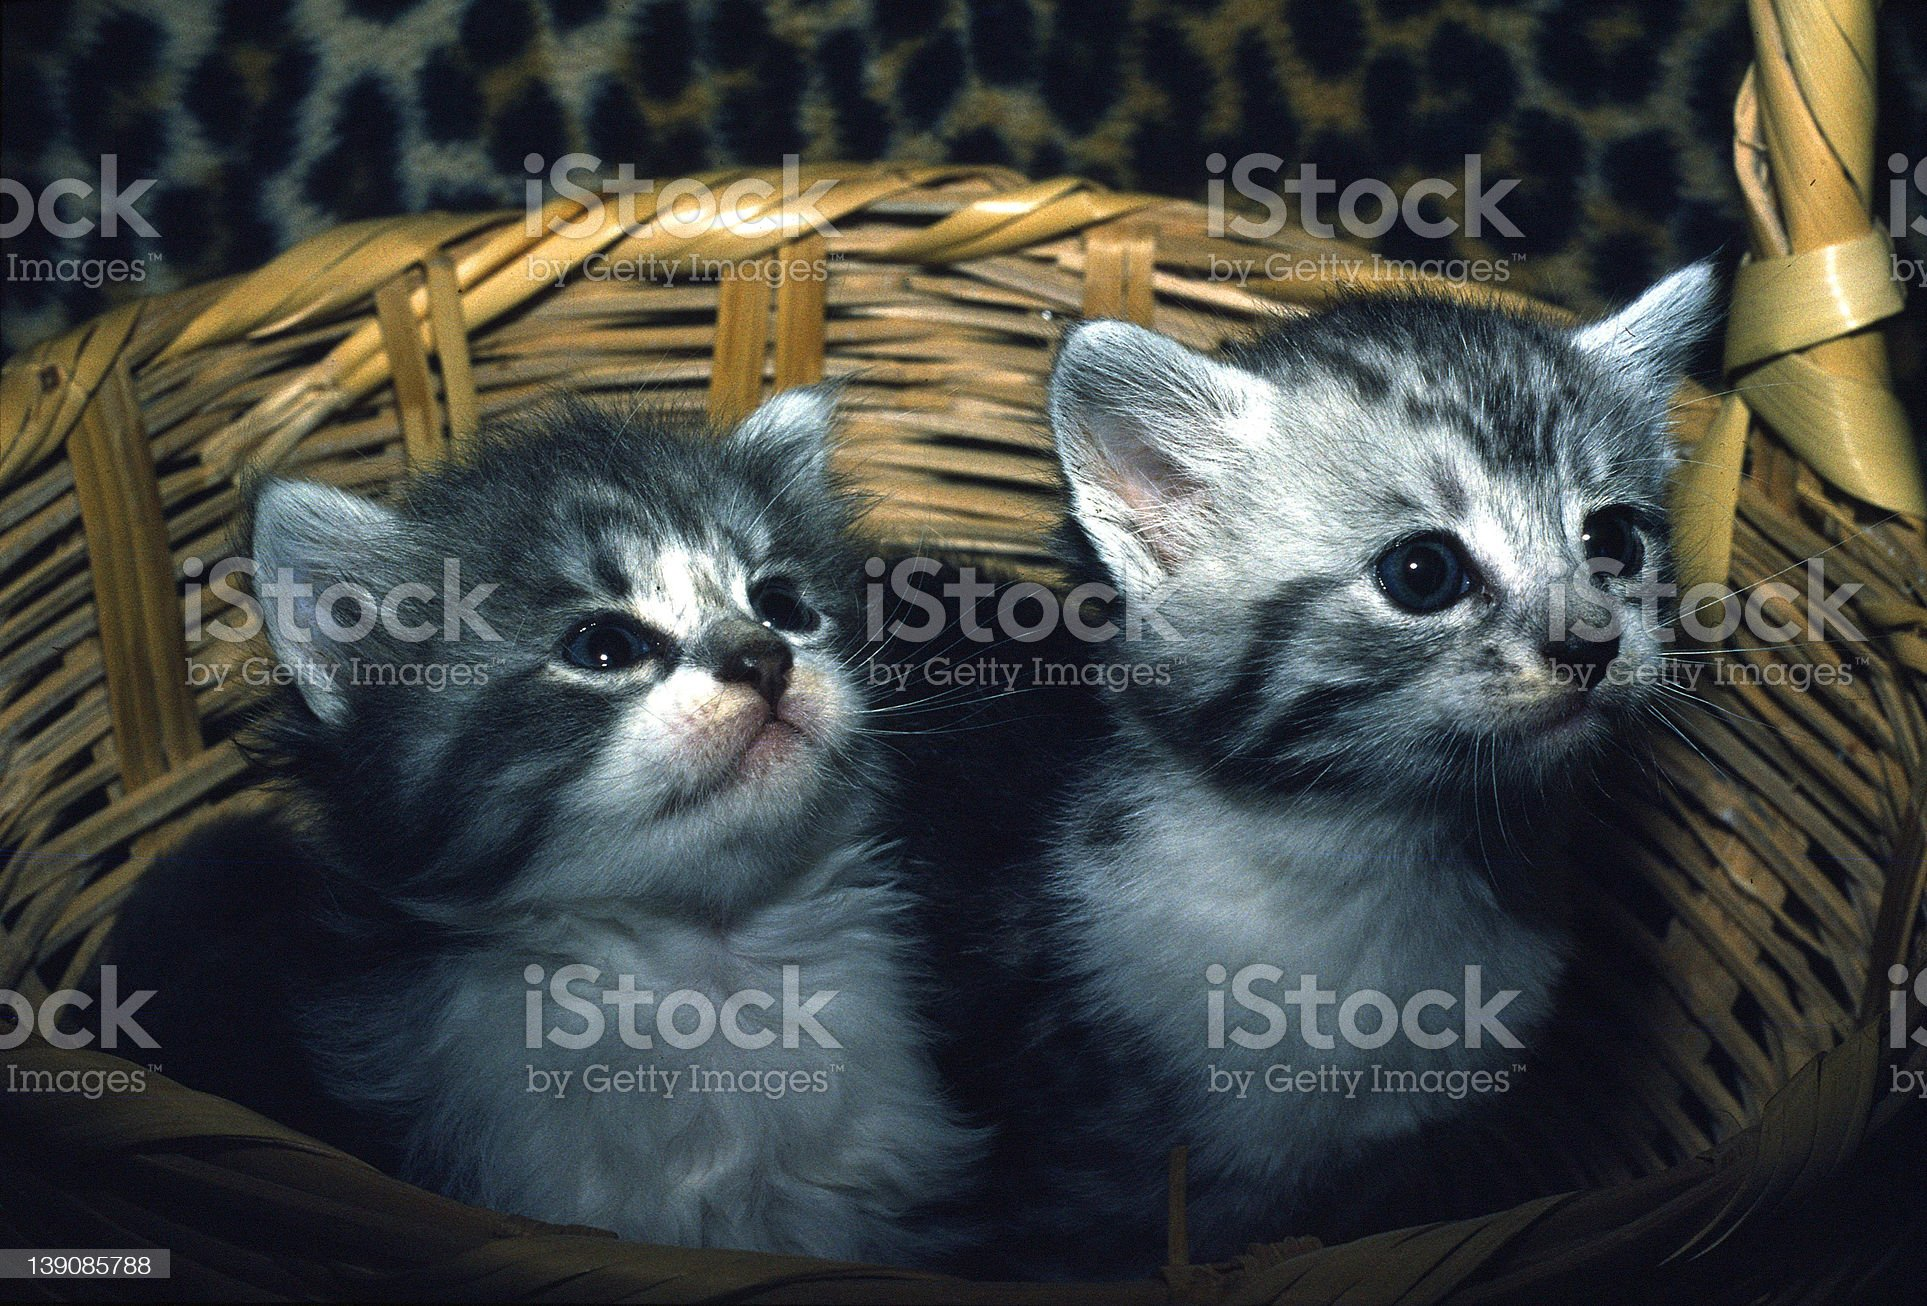 Two kittens in a basket royalty-free stock photo